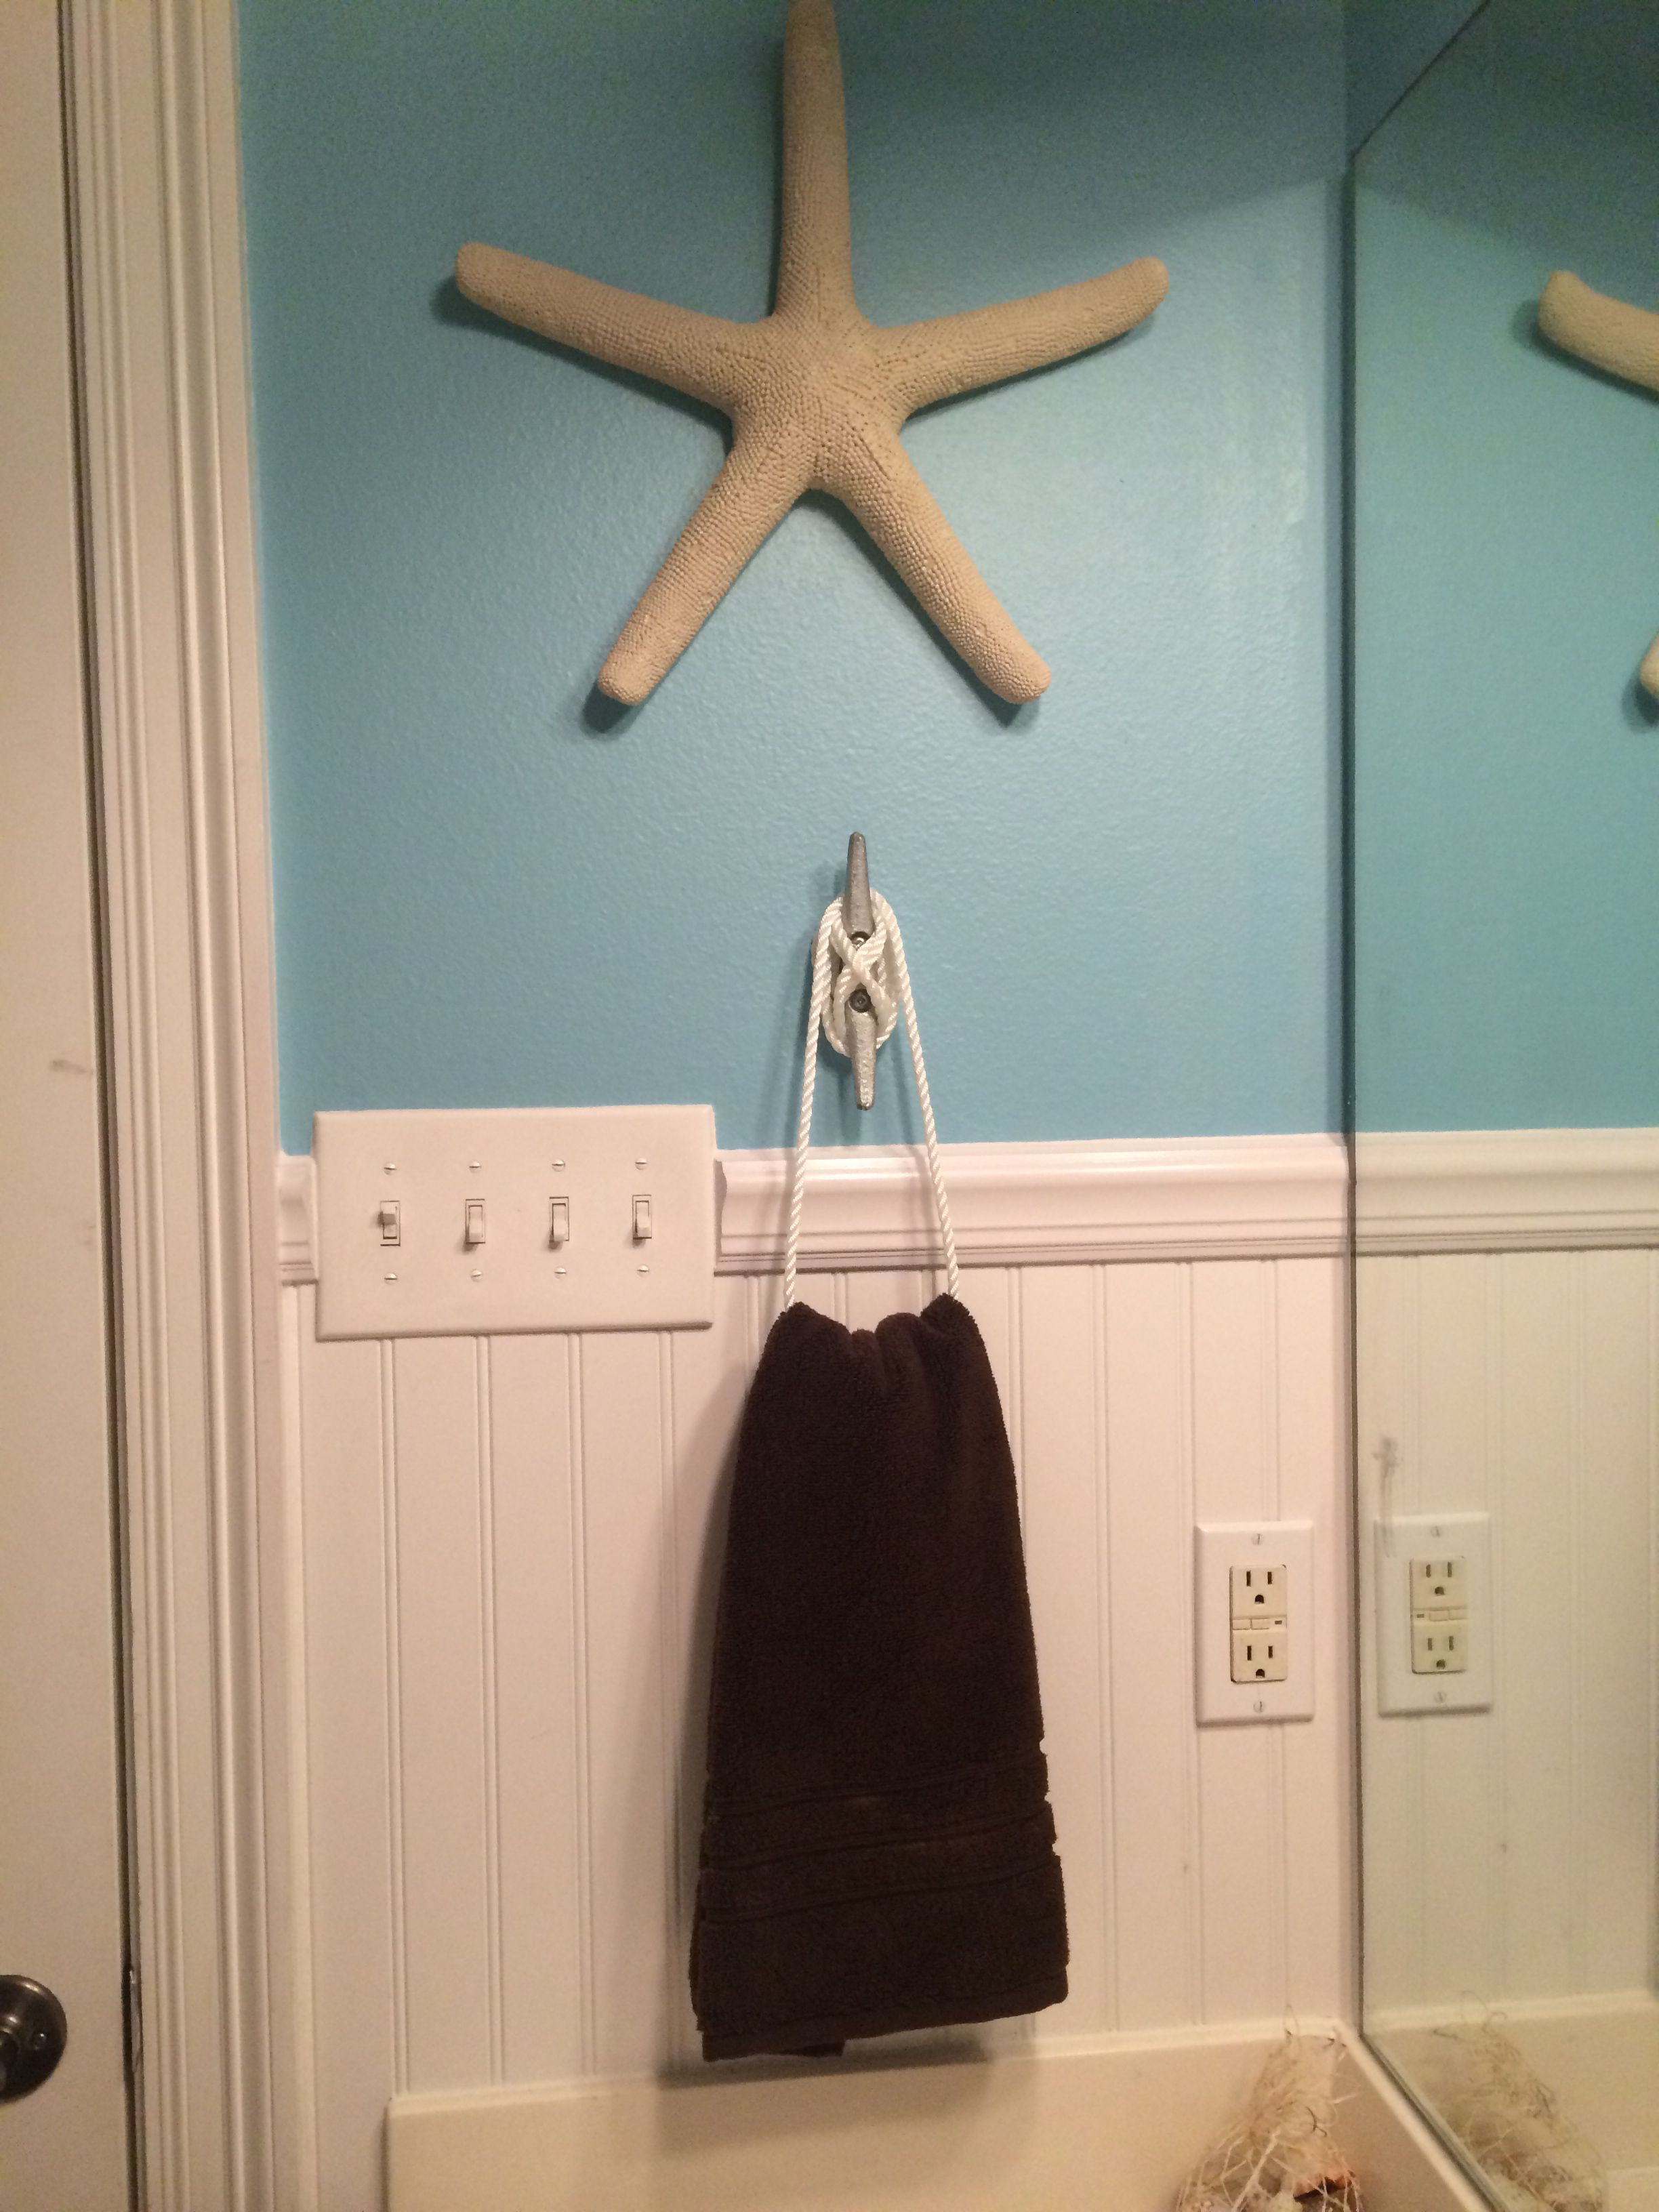 Hand Towel Holder For Bathroom Nautical Or Beach Themed Bathroom Hand Towel Holder I Can Be